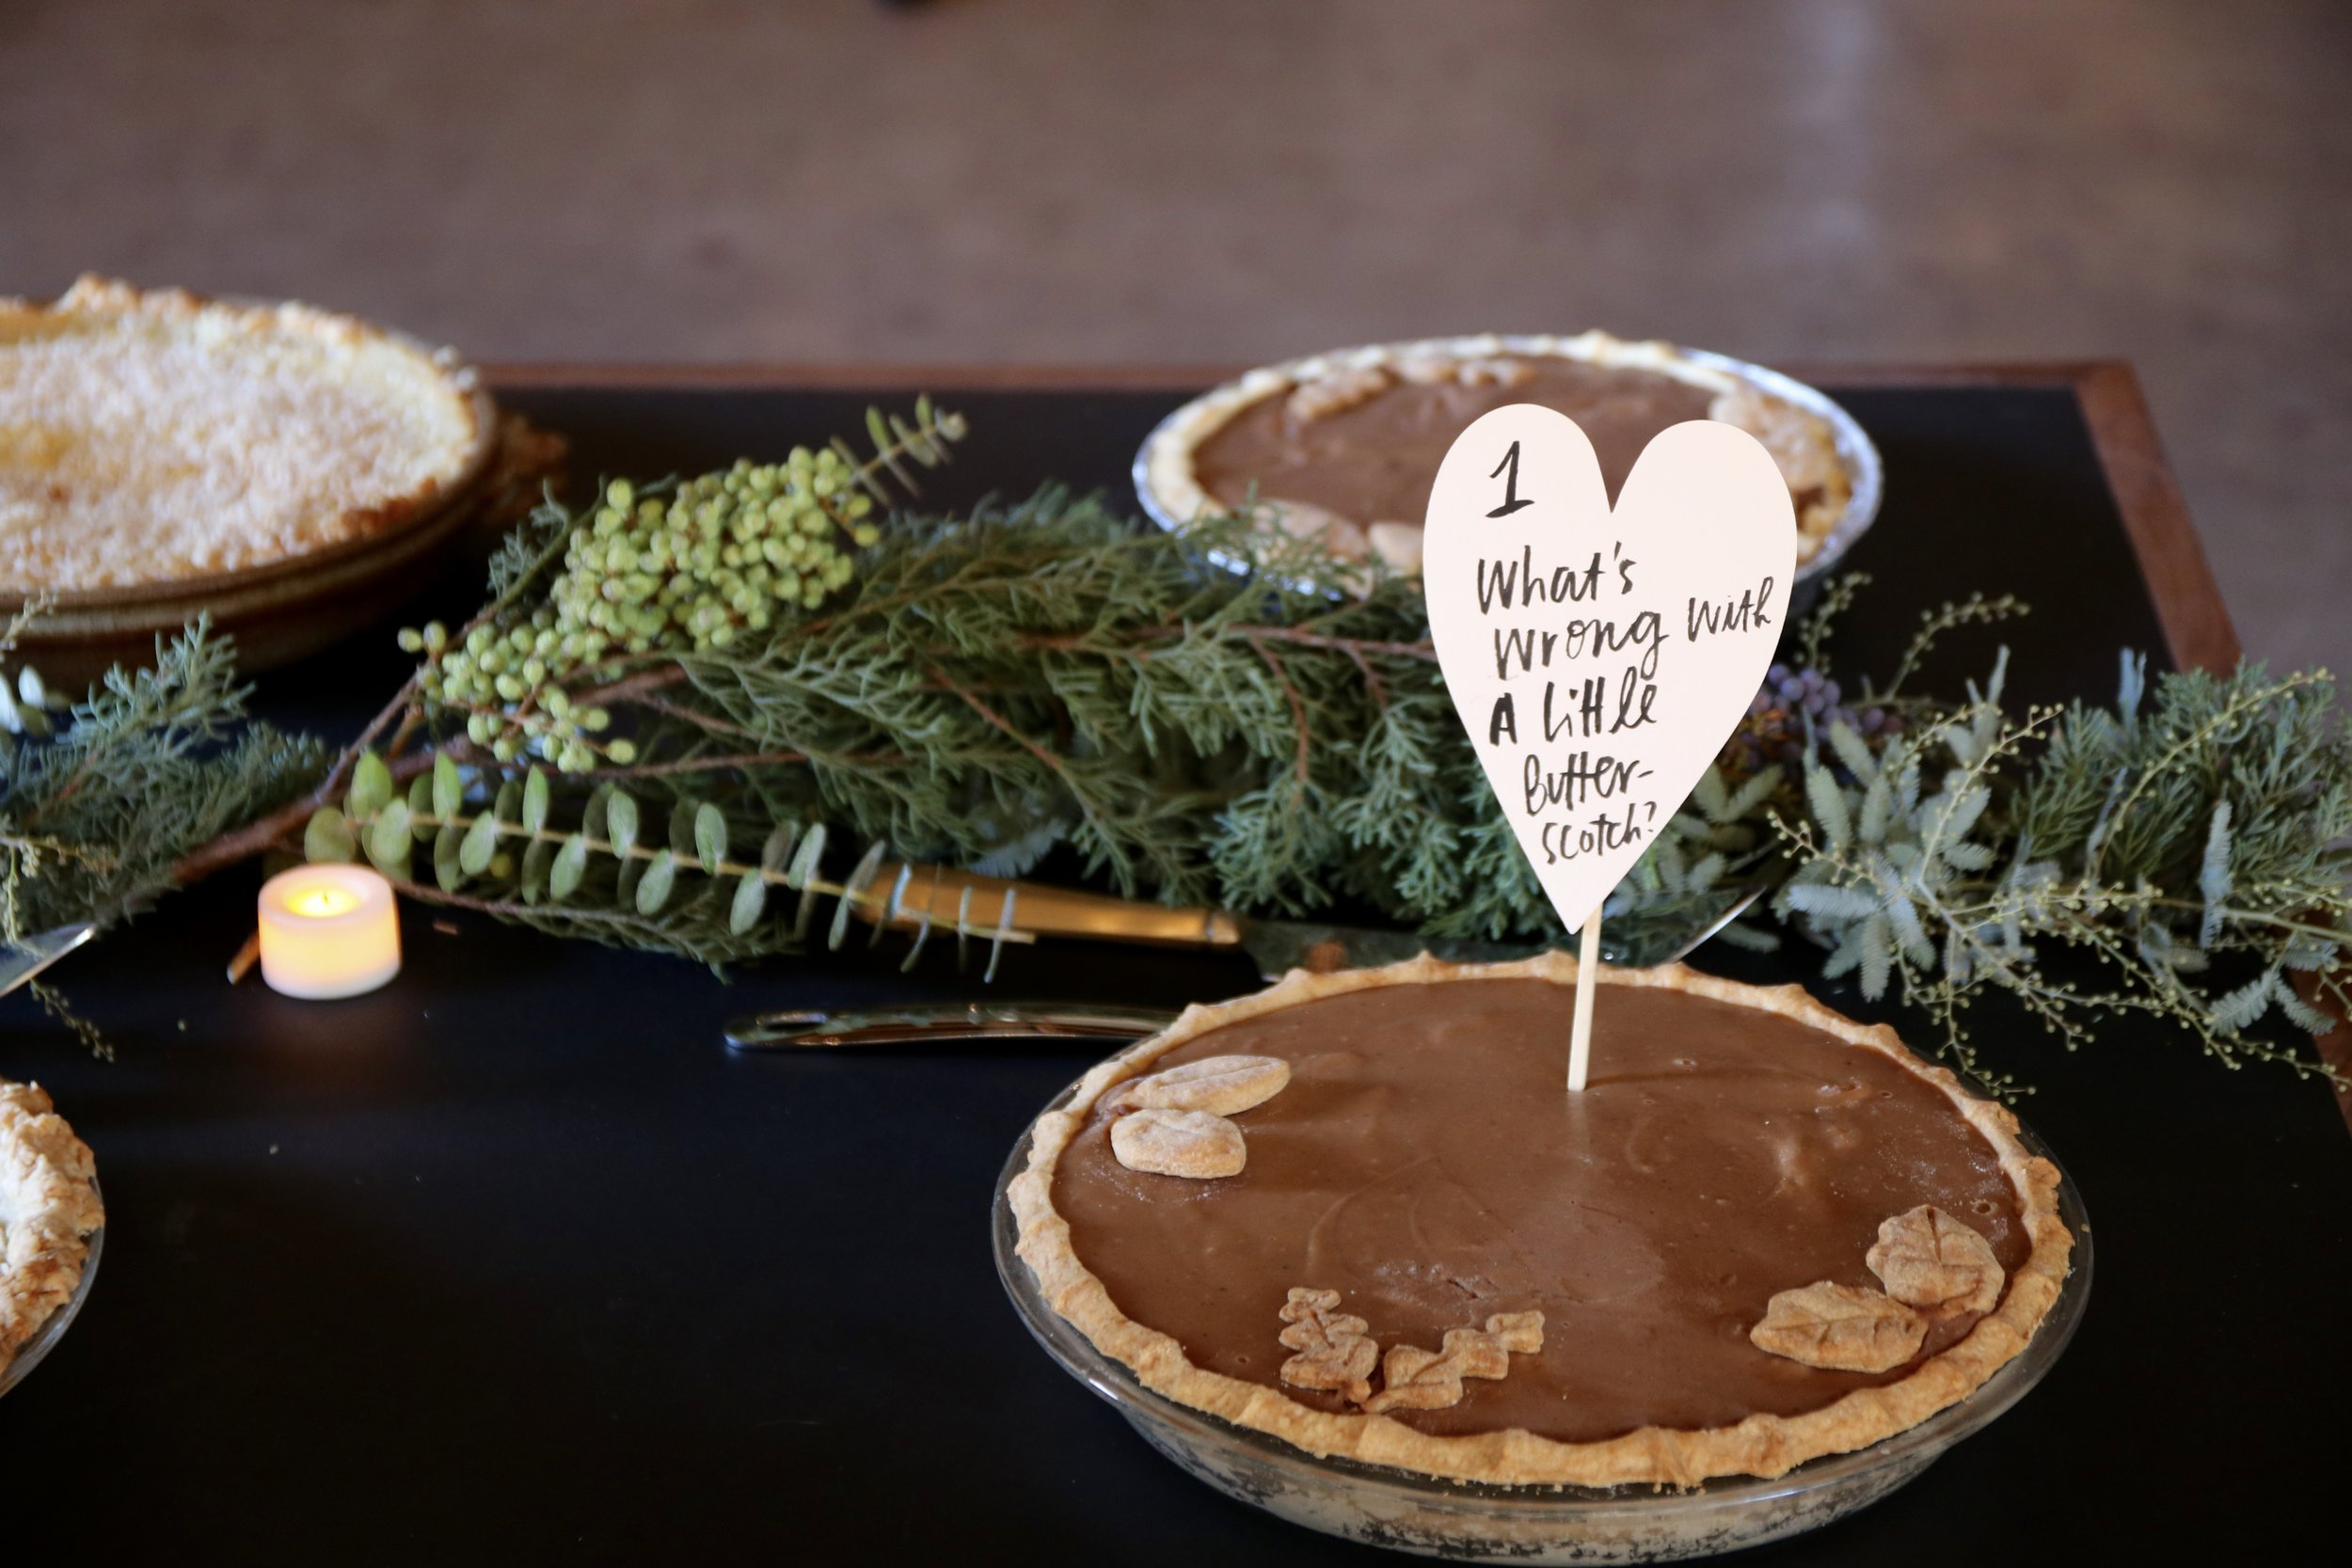 One of the pies in the line-up.  Contestants came up with clever ways to describe and name their creations. Signs by Joya Rose Groves. Foraged seasonal garland by Olivetta Flowers and Foliage.